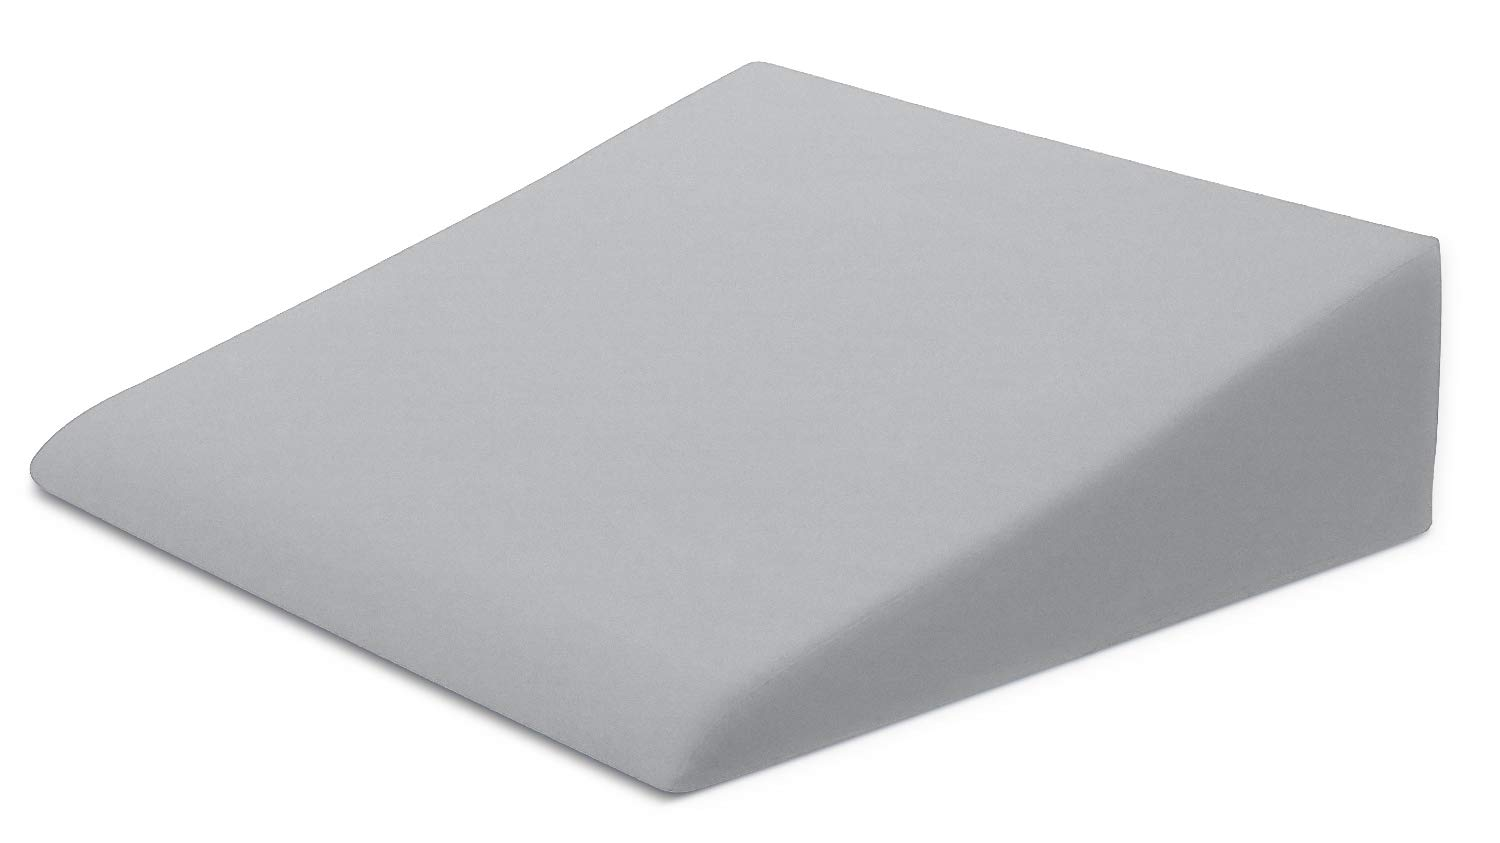 Xtreme Comforts Hypoallergenic Memory Foam Bed Wedge Microfiber Cover Designed to Fit Our (27 'x 25'' x 7'') Bed Wedge Pillow (Light Gray)